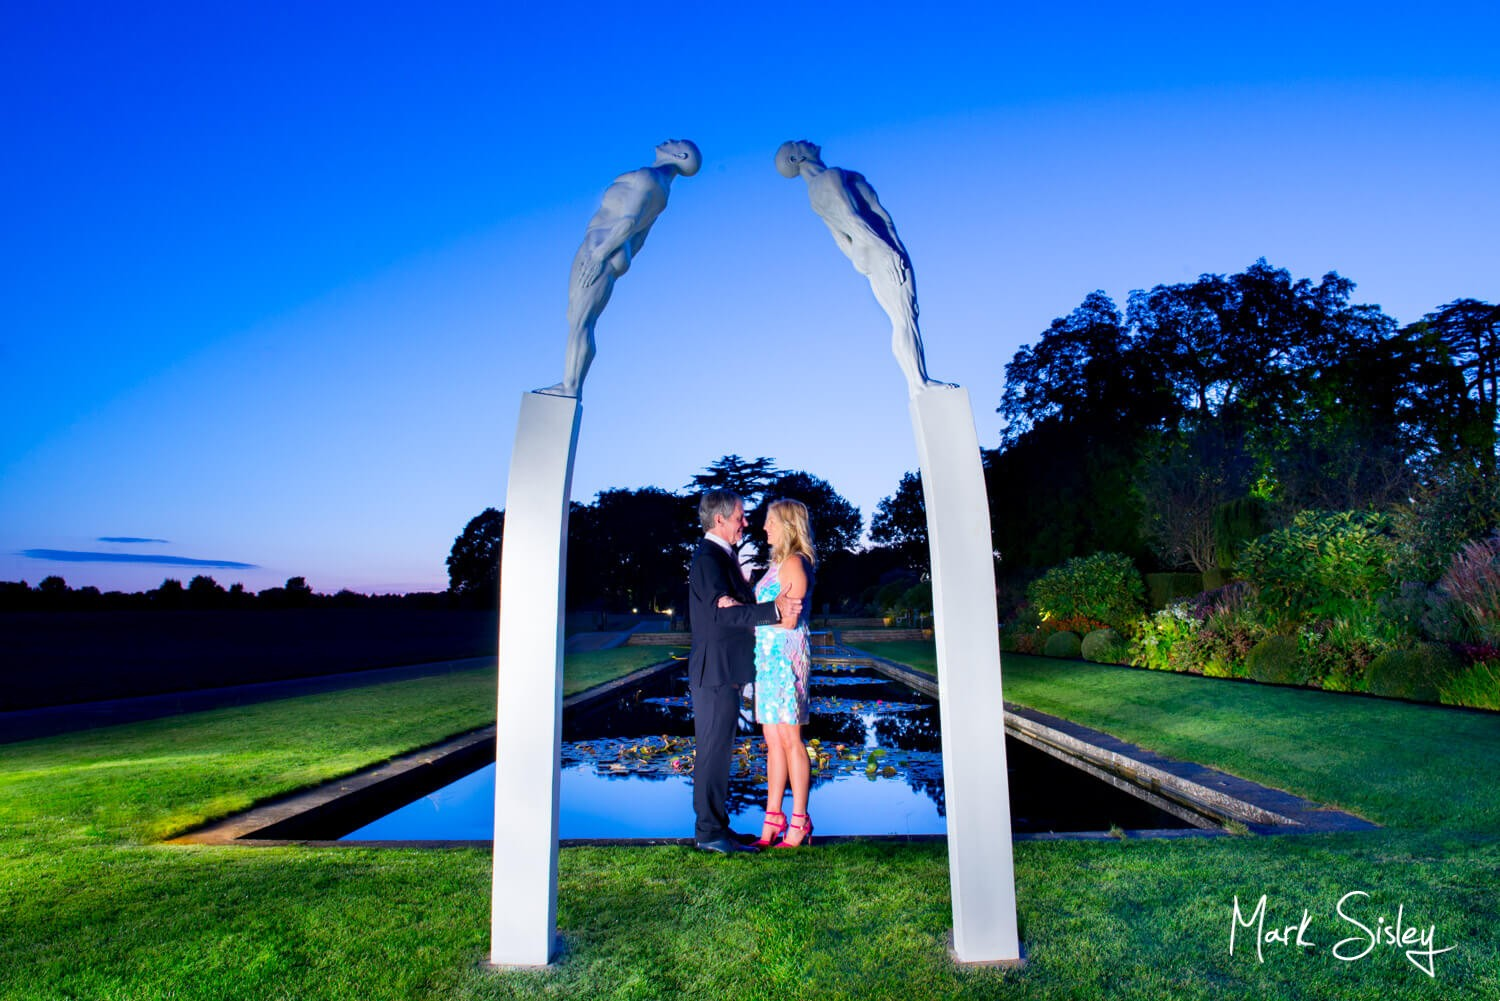 Wedding photography in the gardens after dusk at The Grove Hotel in Hertfordshire